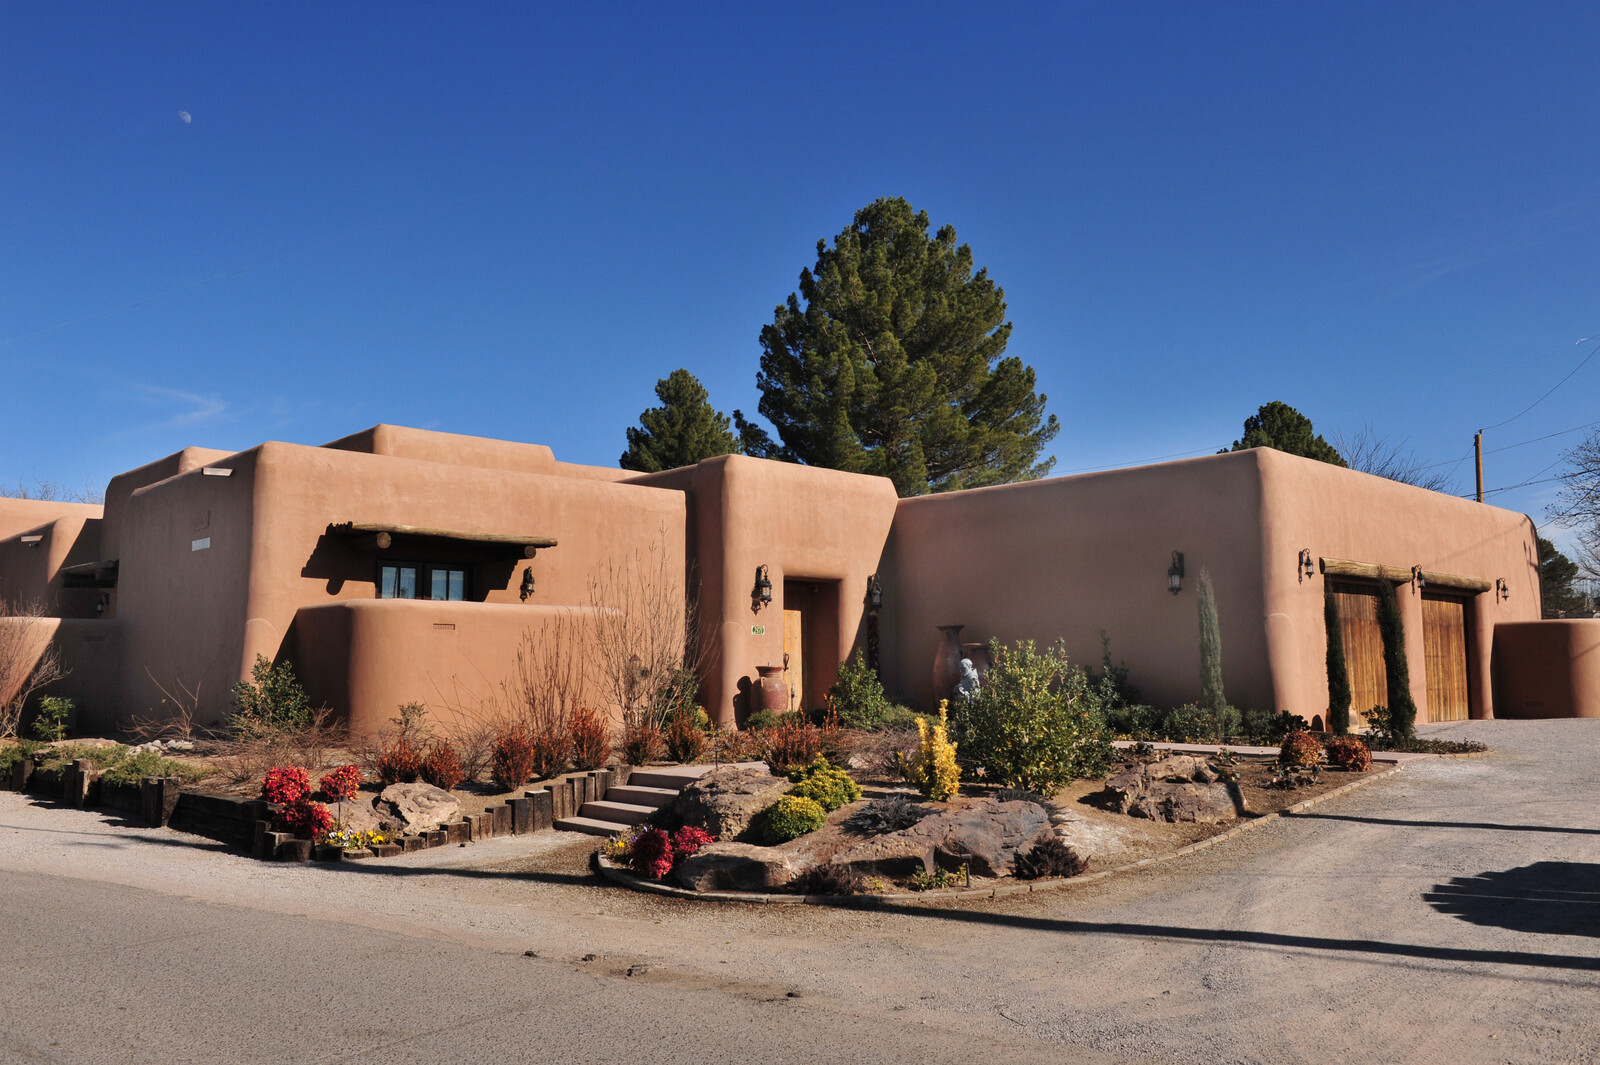 Adobe sytle home with a rock garden out front and wooden accents and garage doors